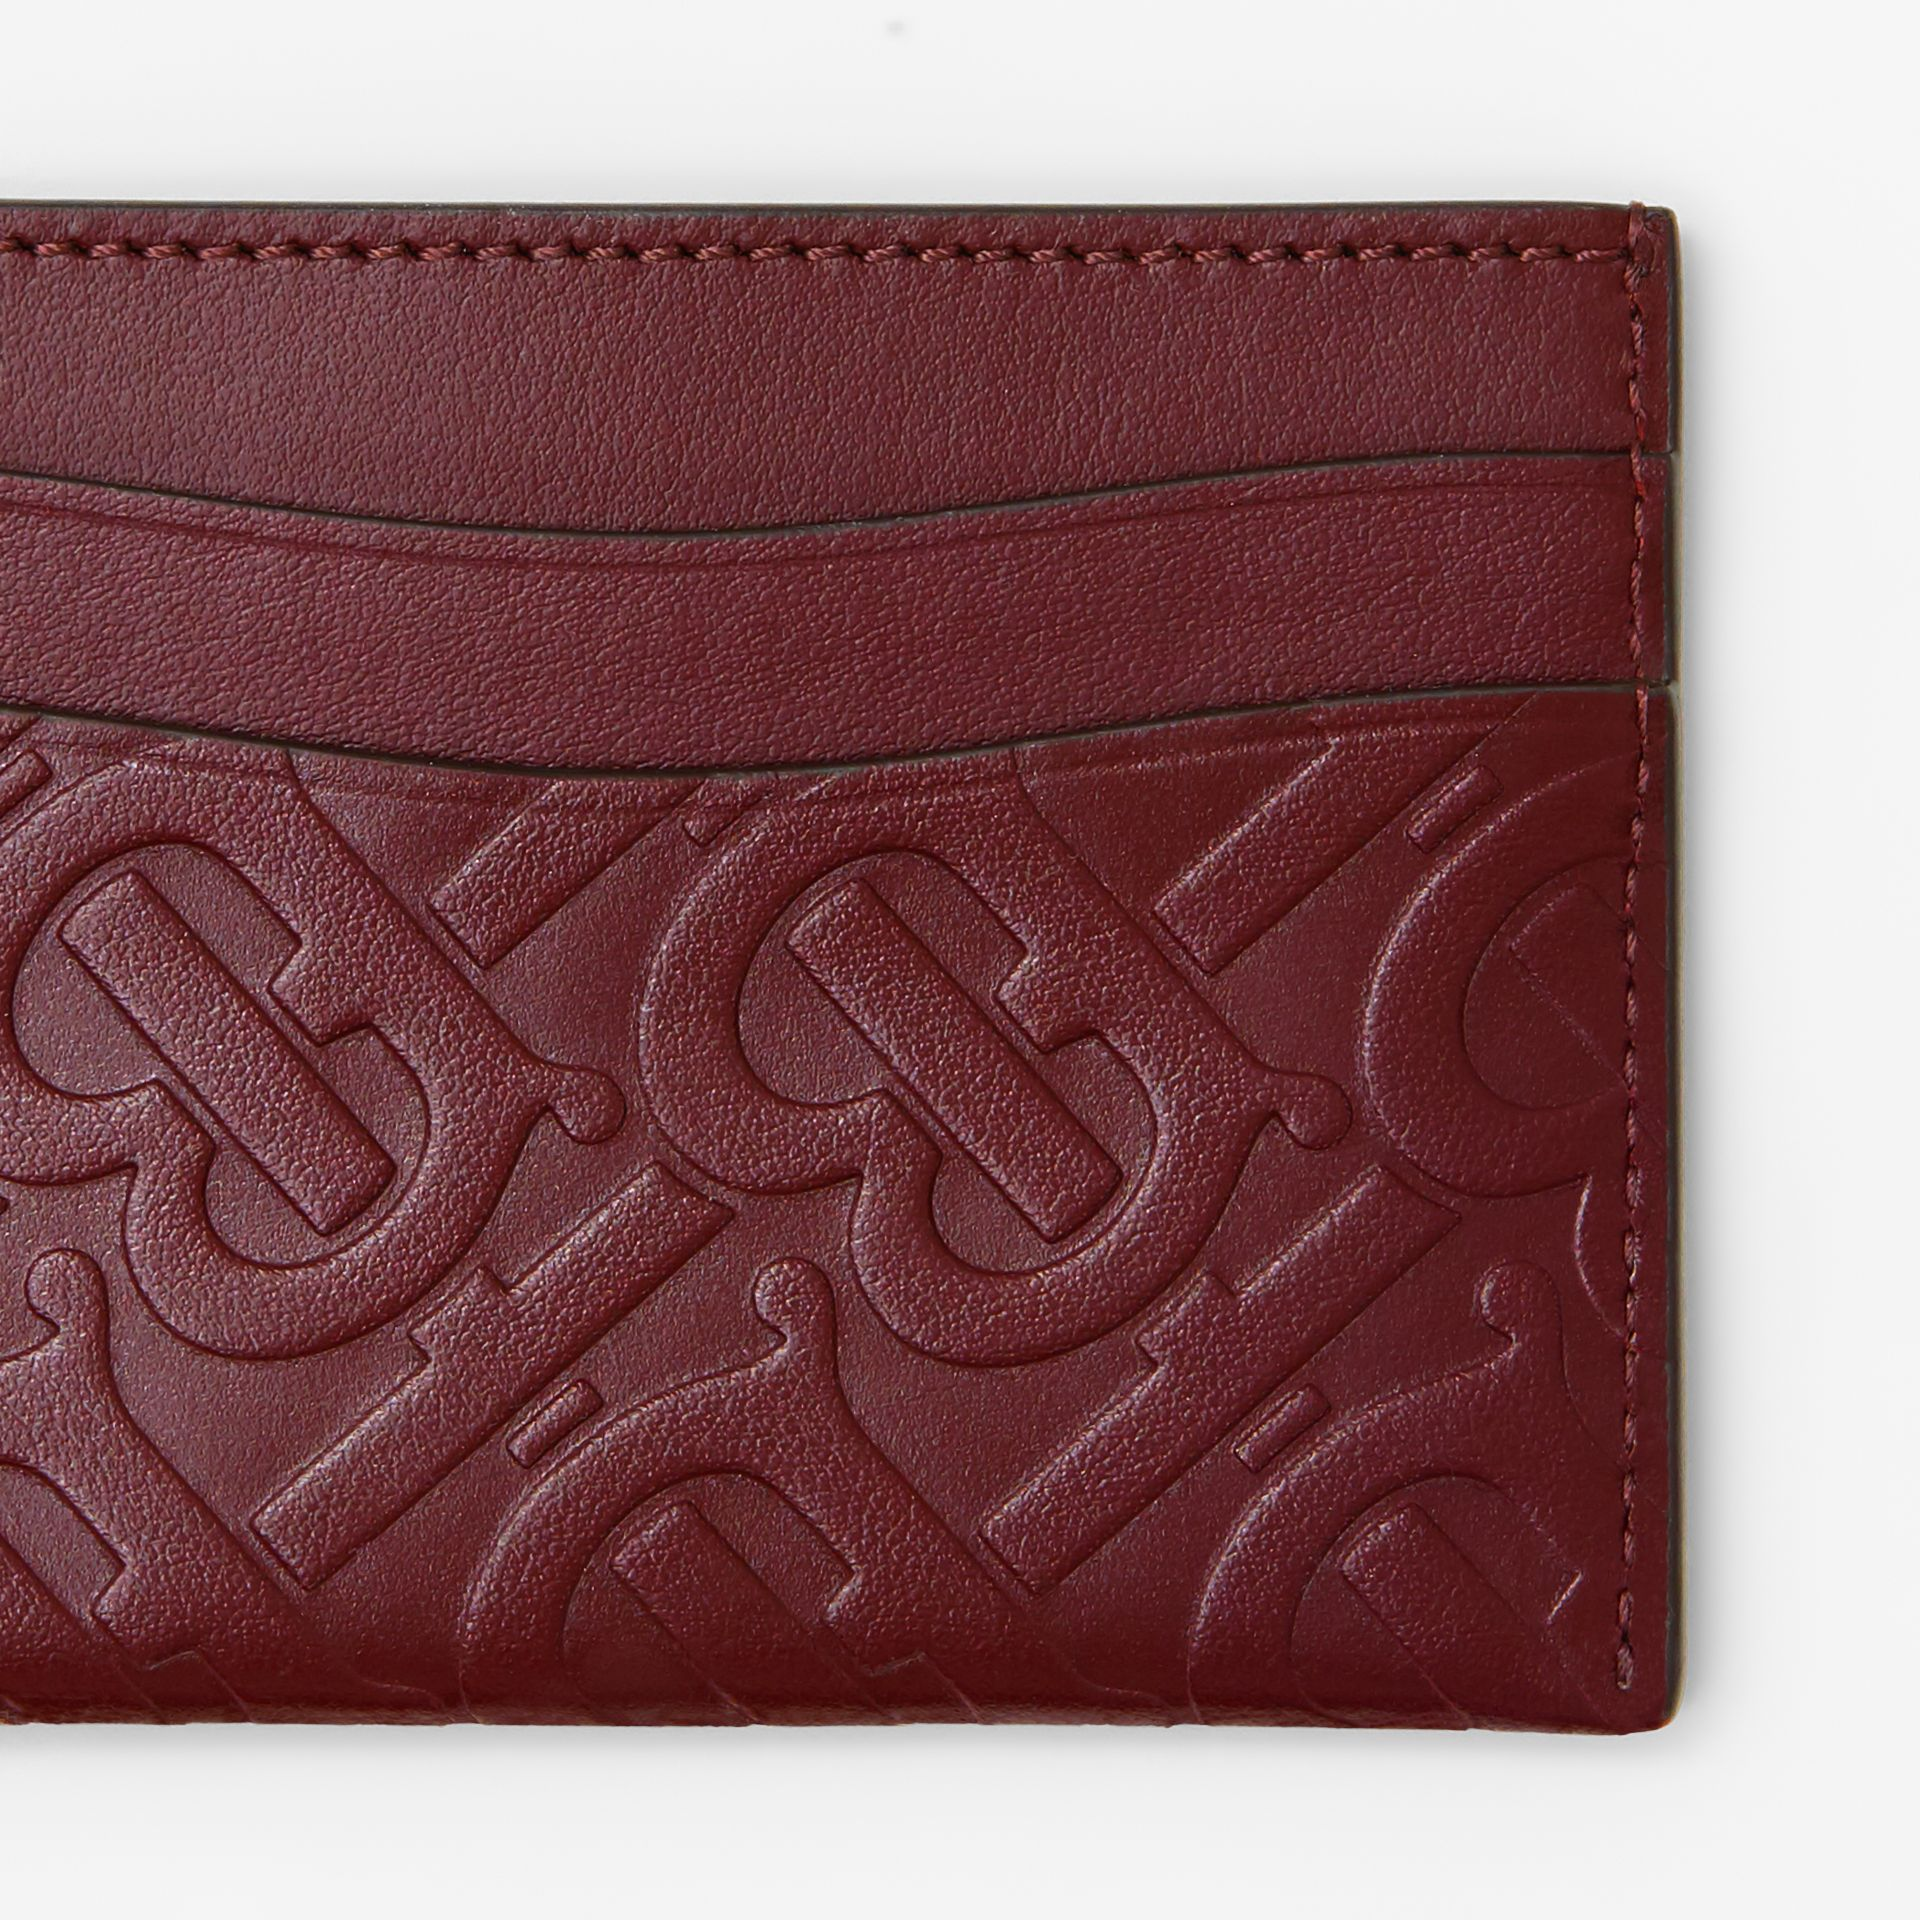 Porte-cartes en cuir Monogram (Oxblood) - Femme | Burberry Canada - photo de la galerie 1